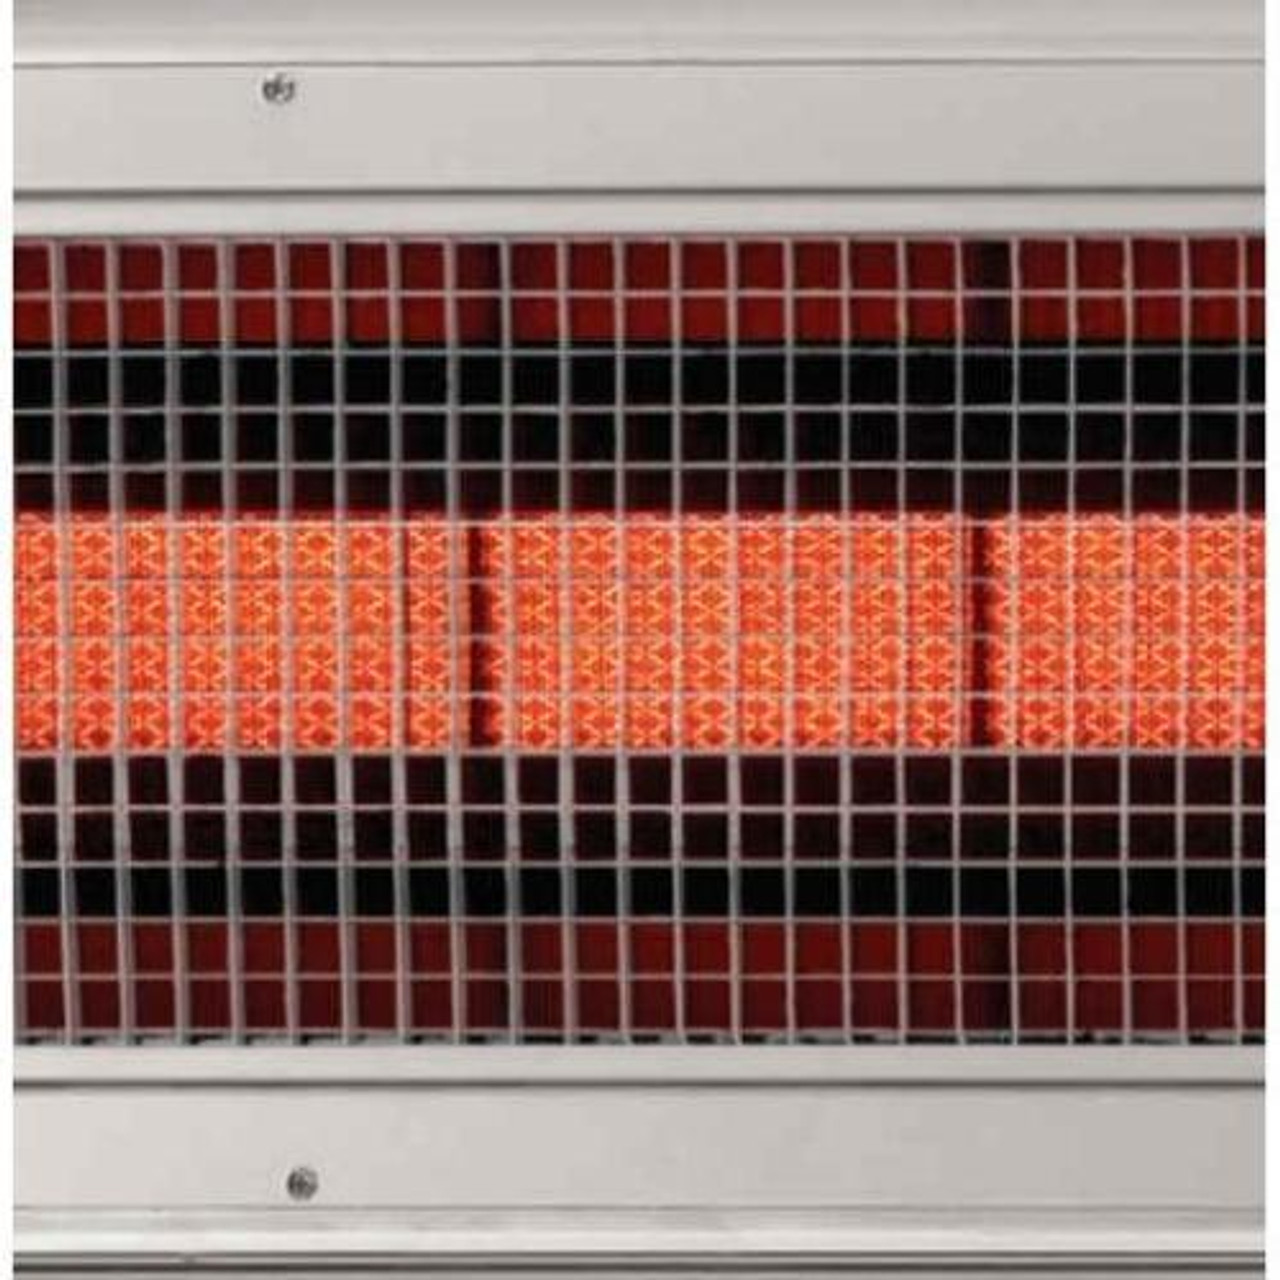 lynx lhem48 stainless steel 48 inch 35 000 btu propane or natural gas infrared patio heater with remote and wall mount switch